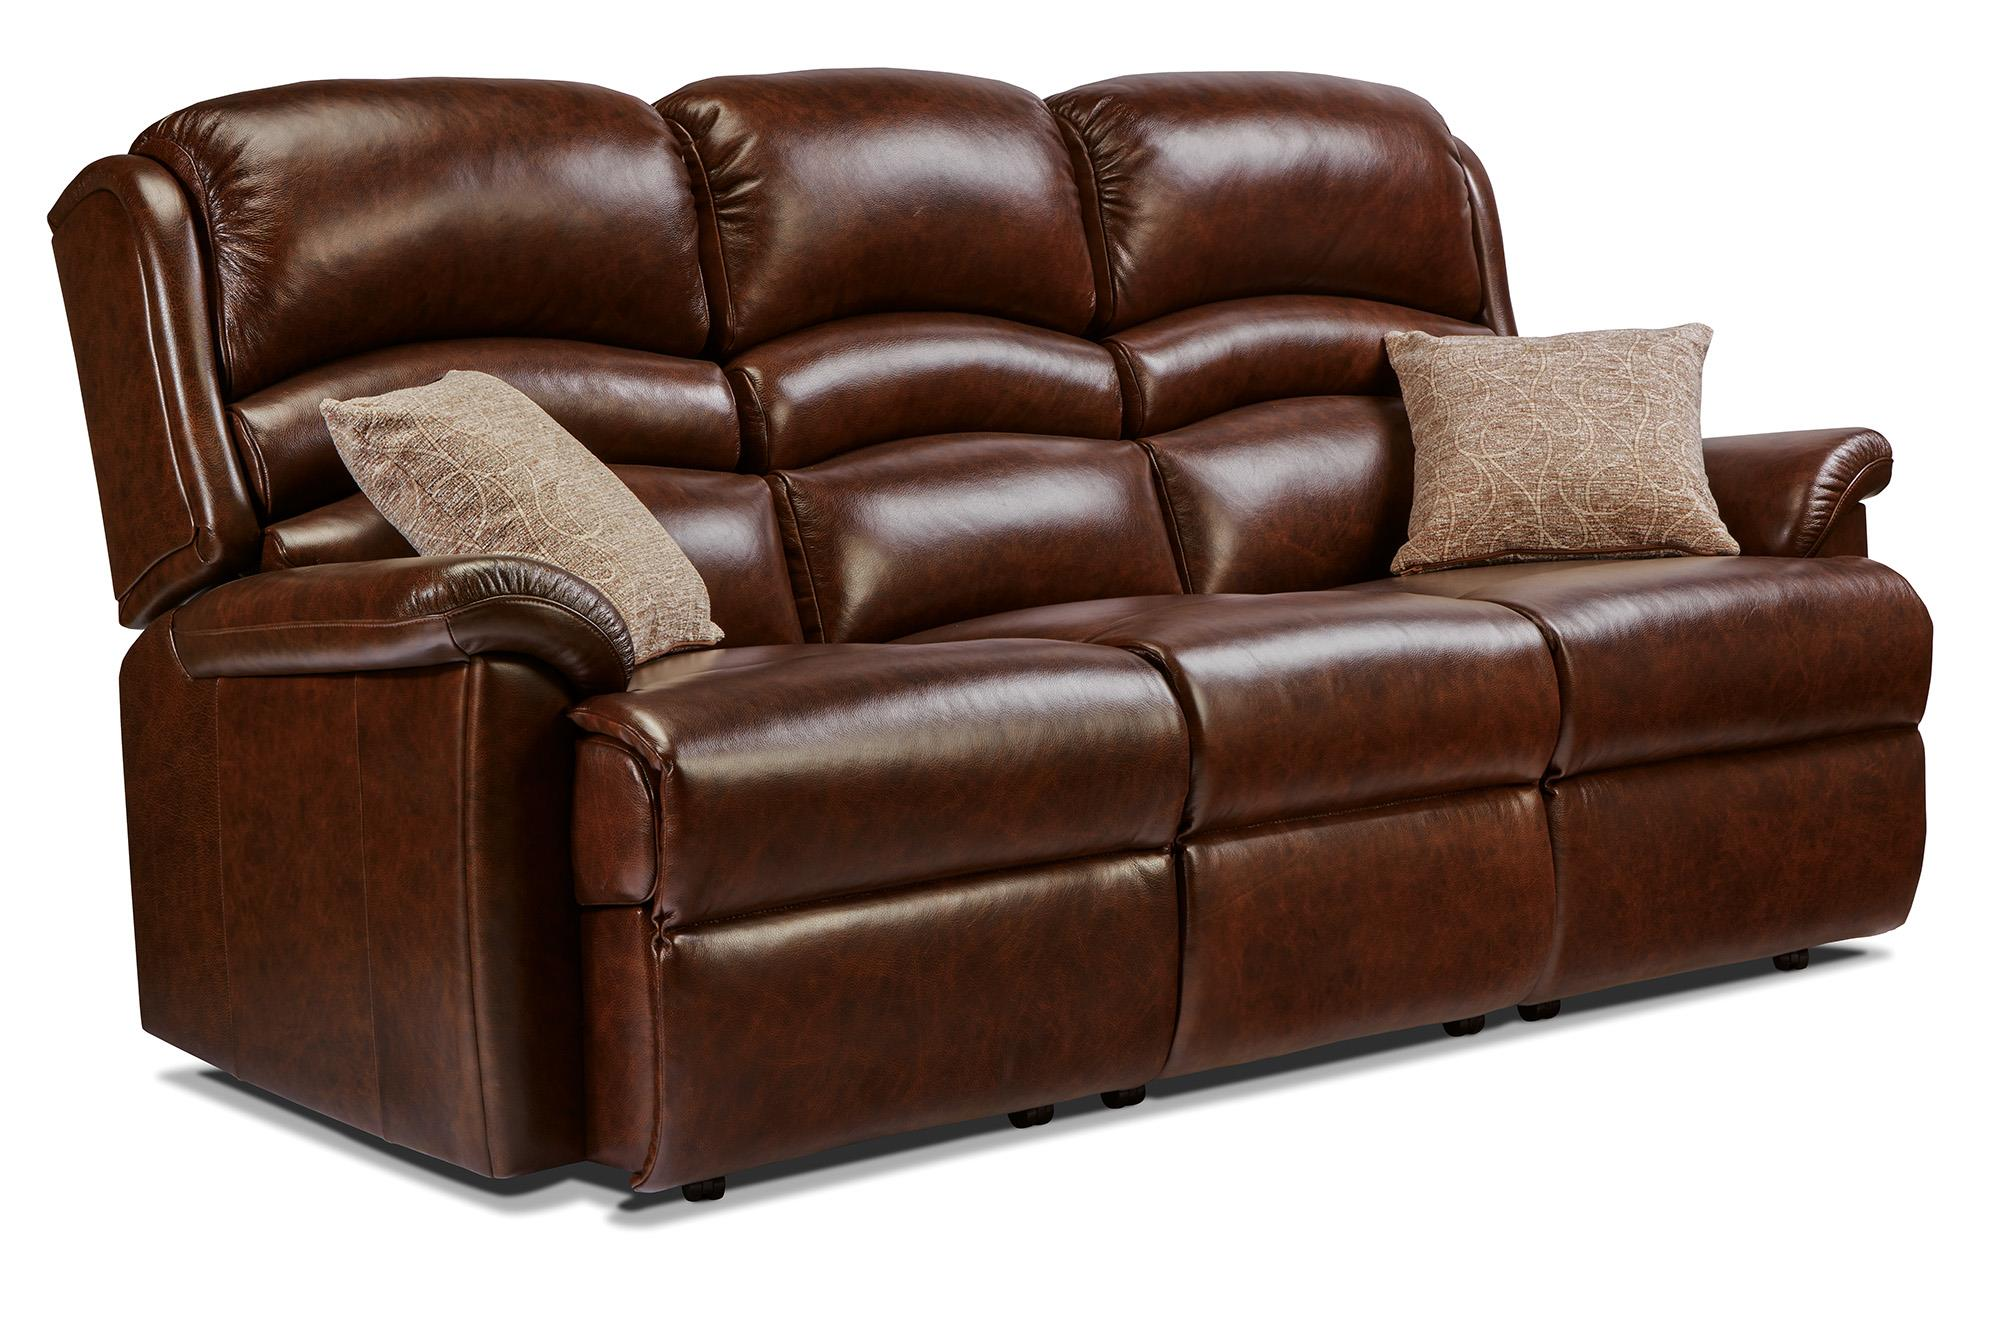 OLIVIA - 3 Seater Leather Settee